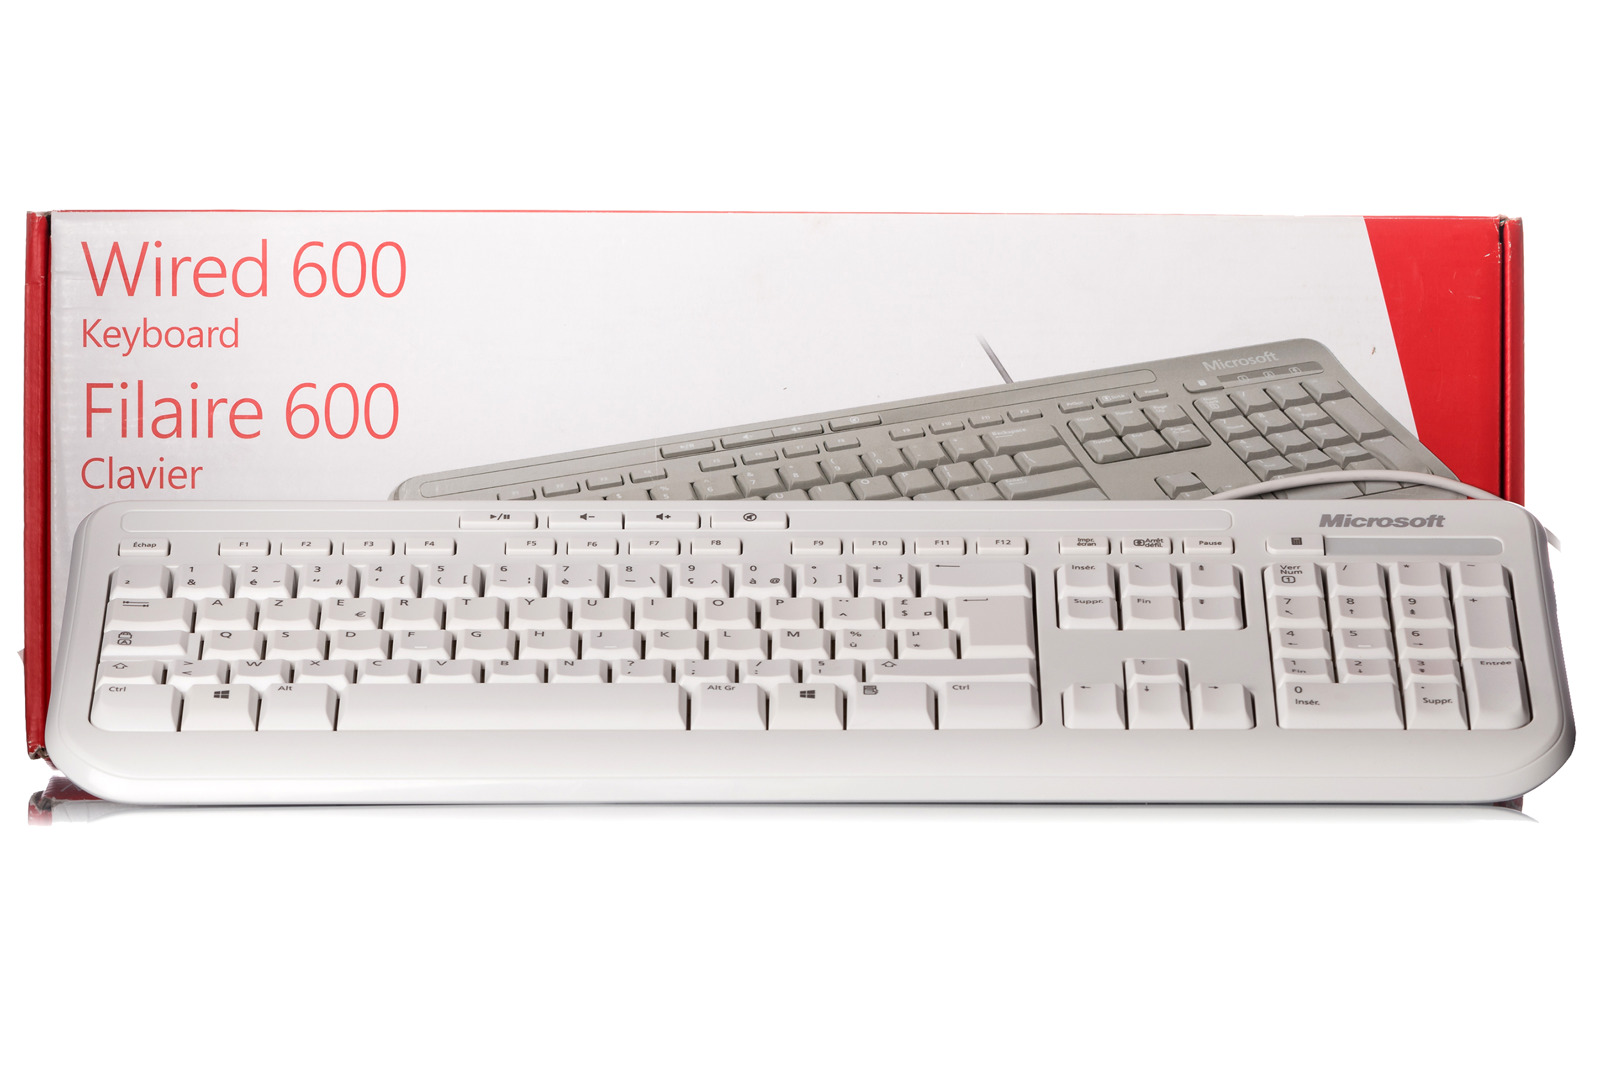 Fine Microsoft Wired Keyboard 600 Image Collection - Wiring Standart ...